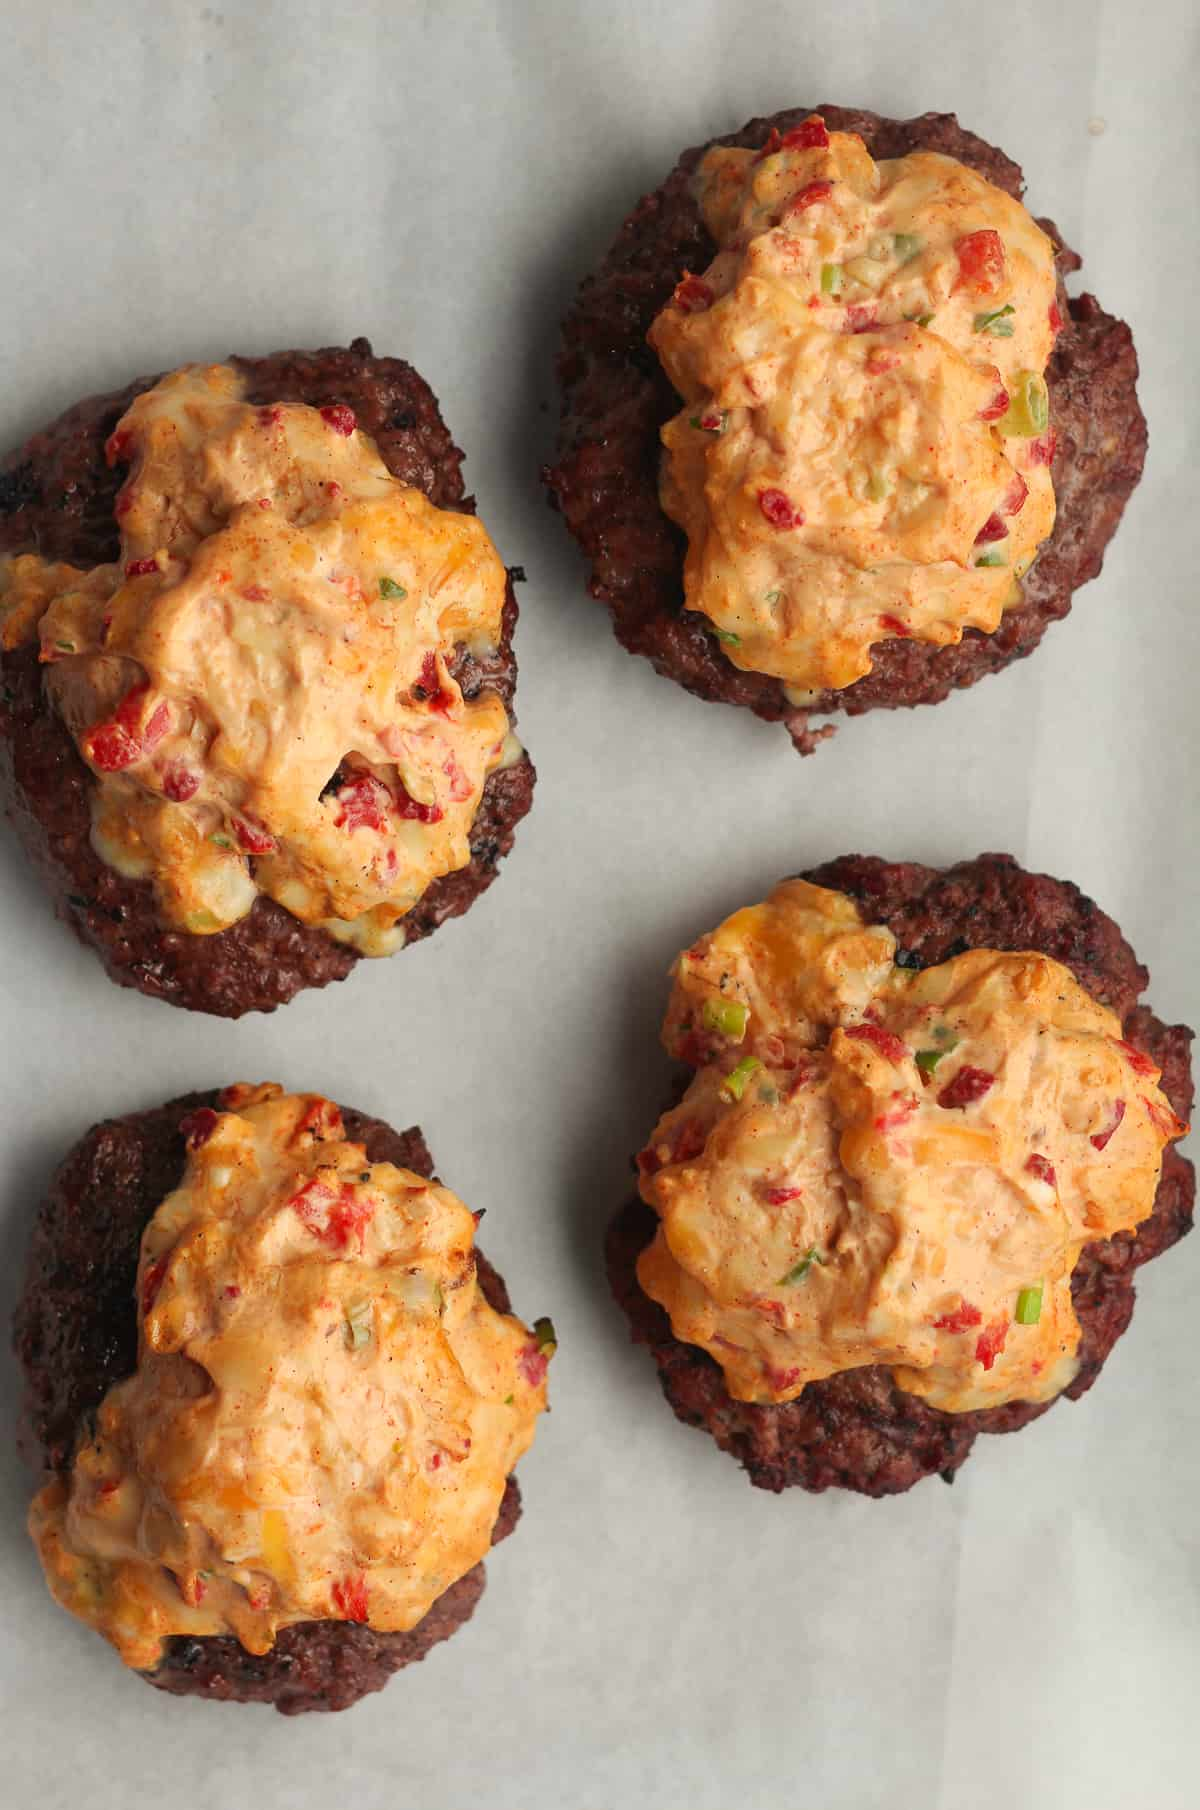 Four just grilled burgers with pimento cheese on top.